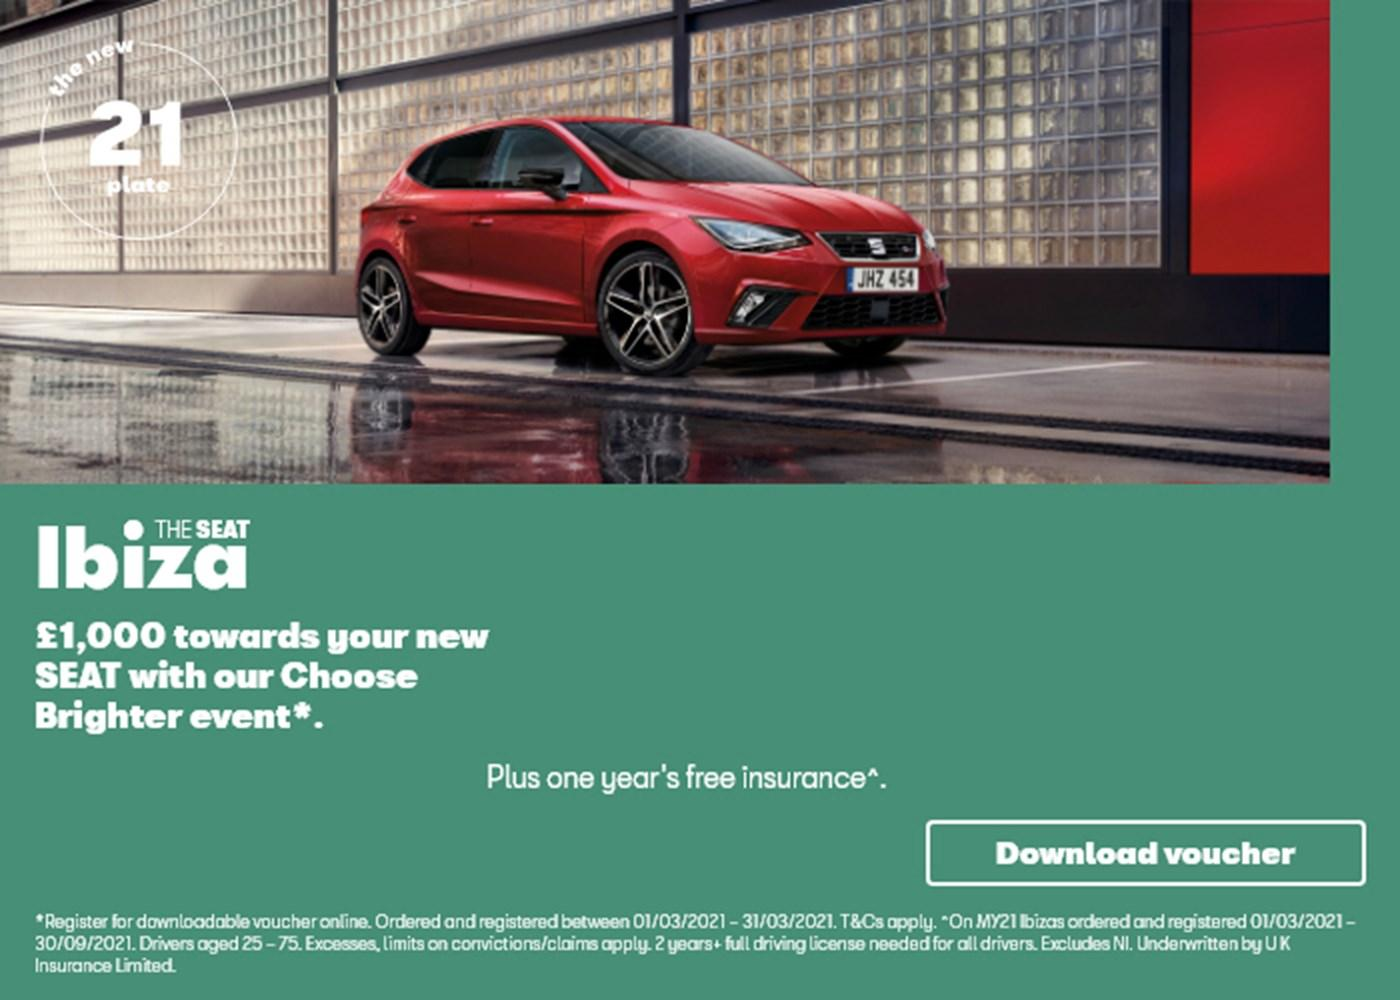 SEAT Ibiza with offer